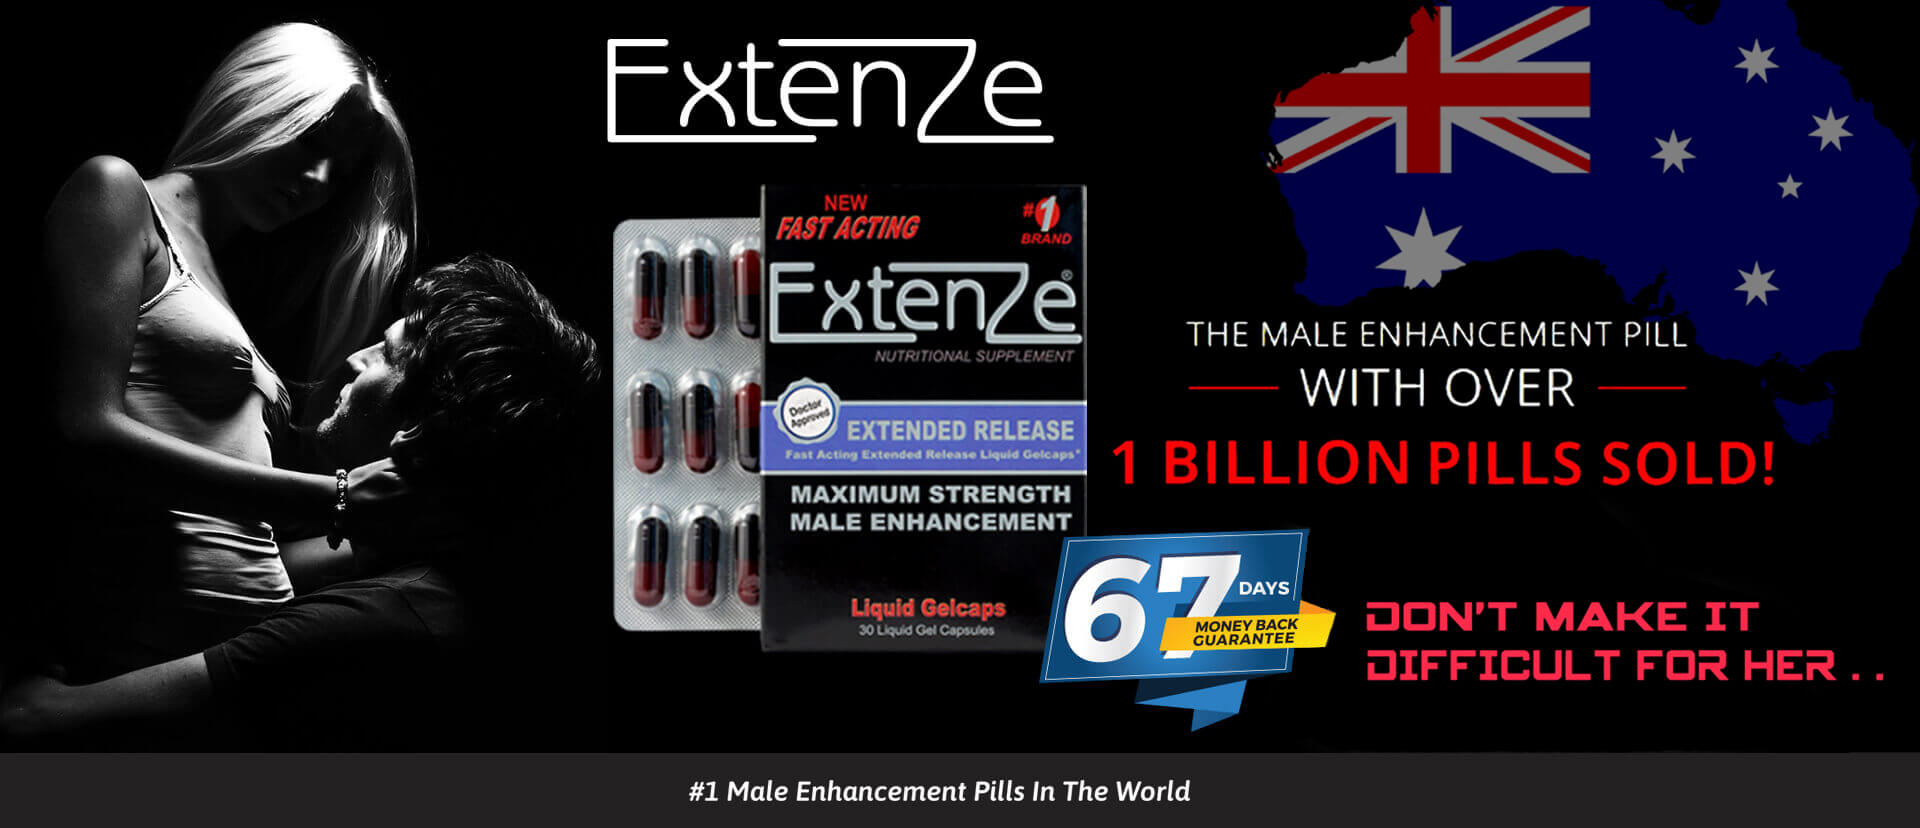 Extenze Male Enhancement Pills price fall